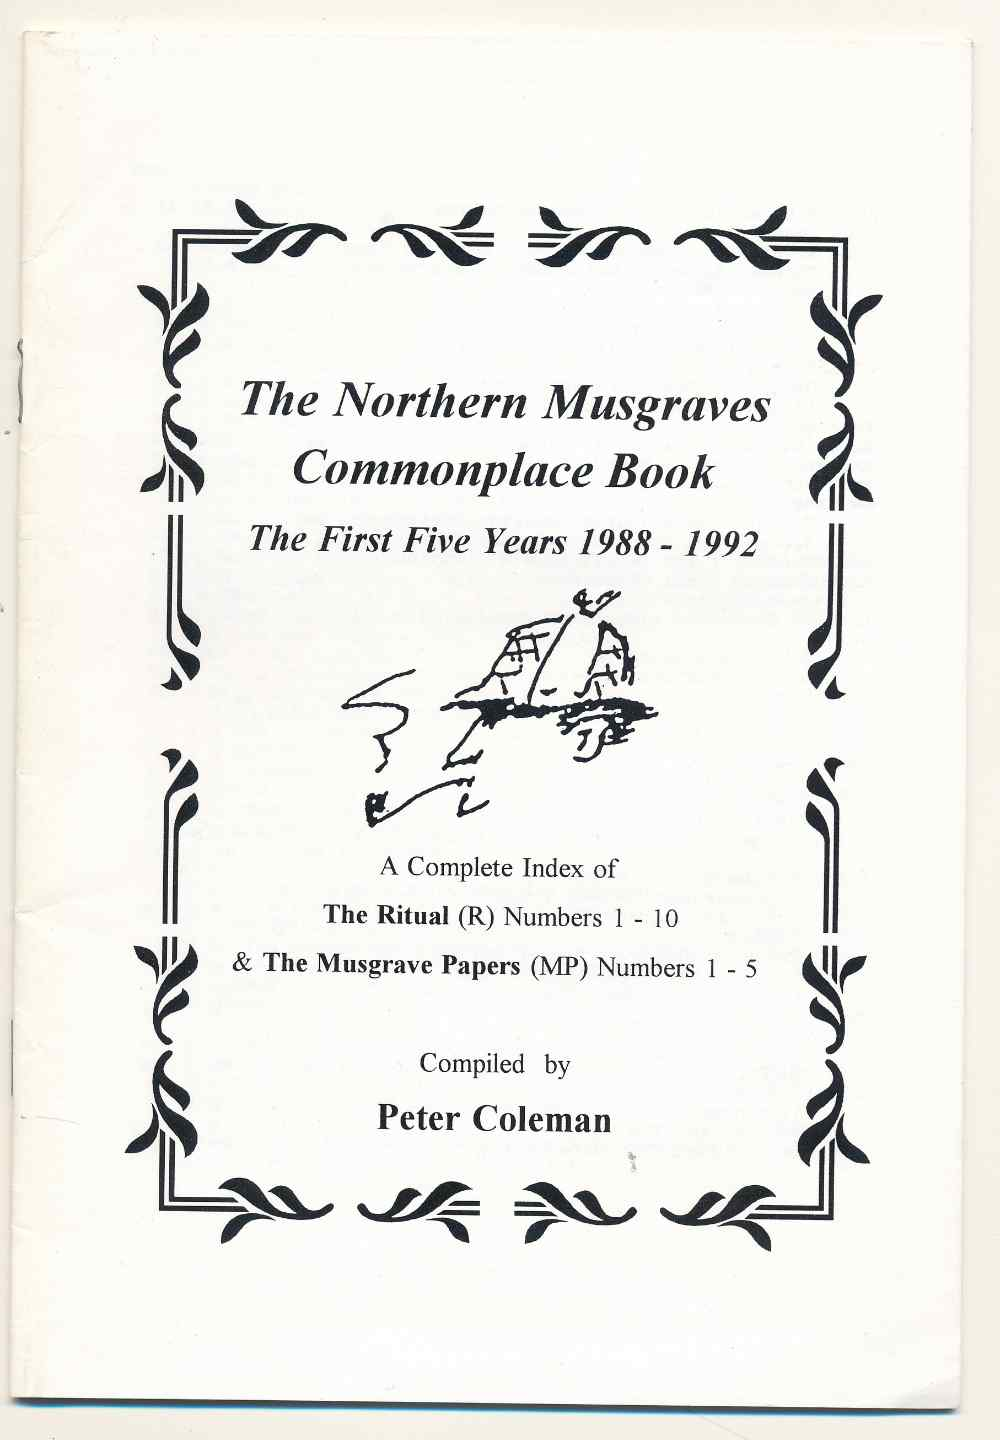 The Northern Musgraves commonplace book : the first five years 1988-1992